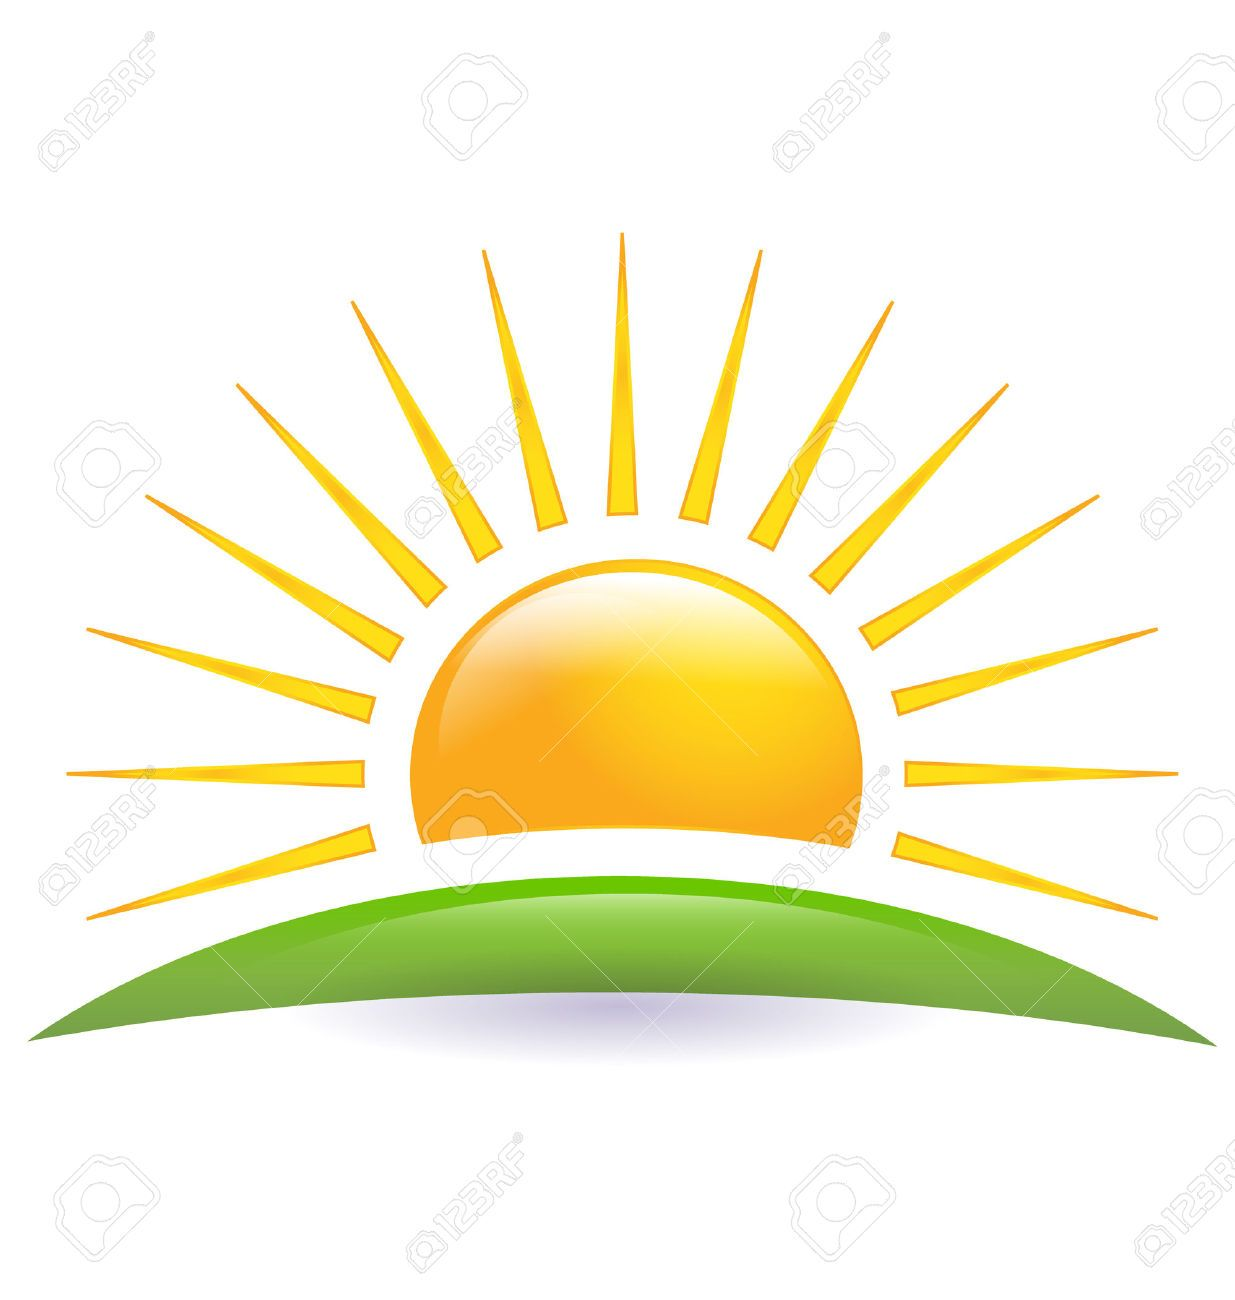 Vintage sun and hill clipart vector library Green hill with sun rays clipart - ClipartFest | farm ... vector library